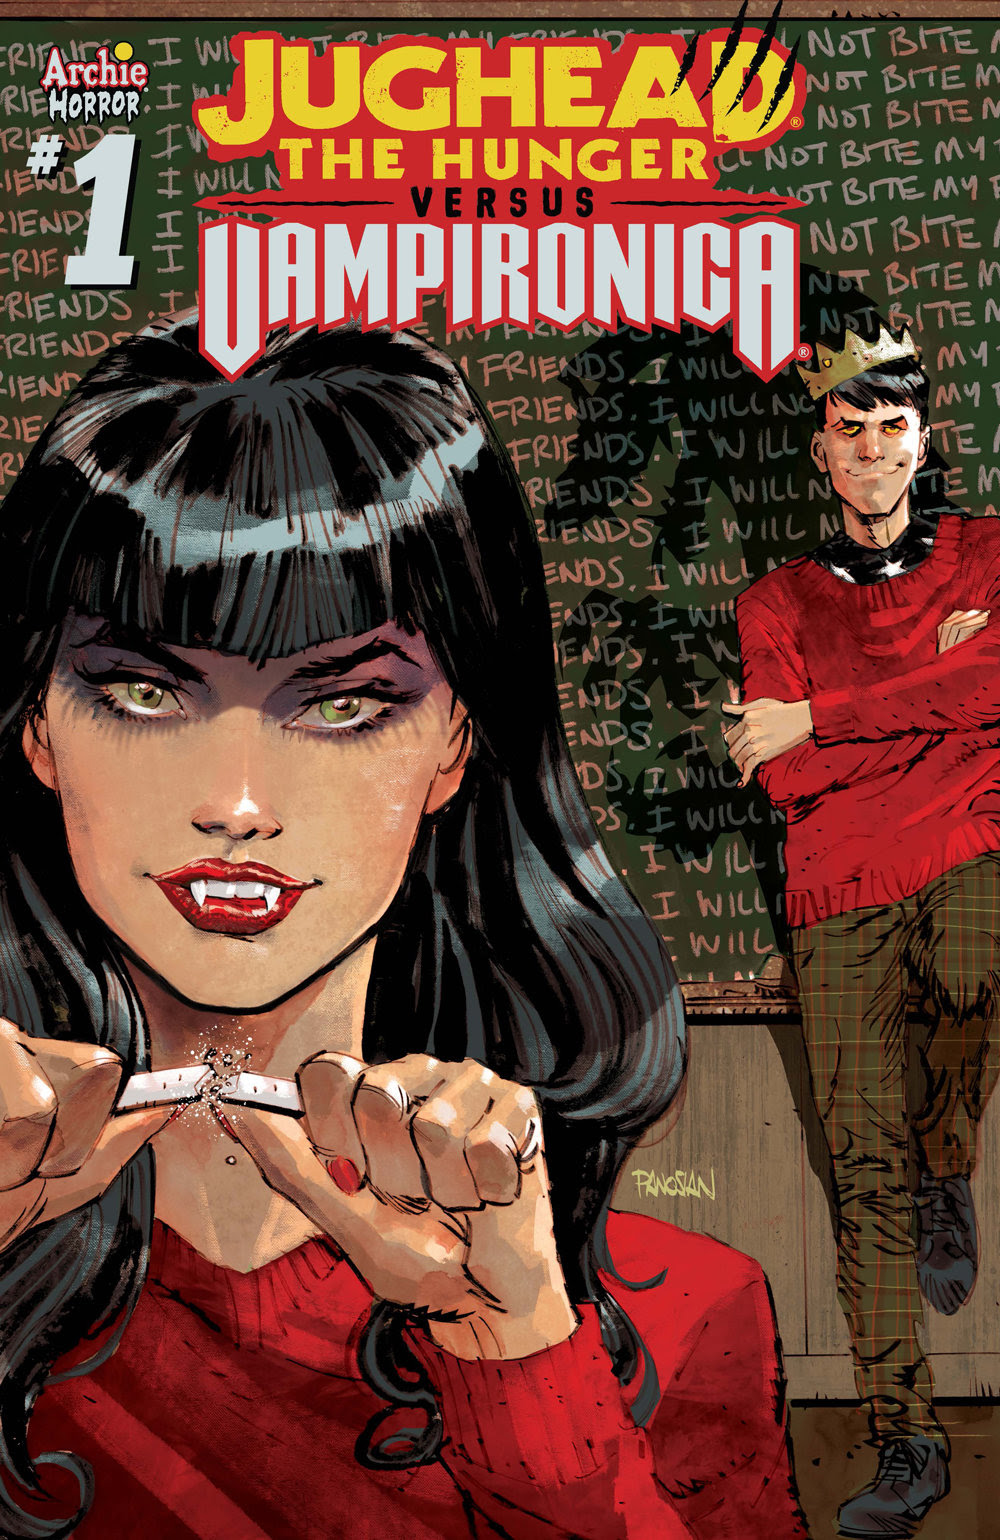 JUGHEAD: THE HUNGER VS. VAMPIRONICA #1: CVR C Panosian